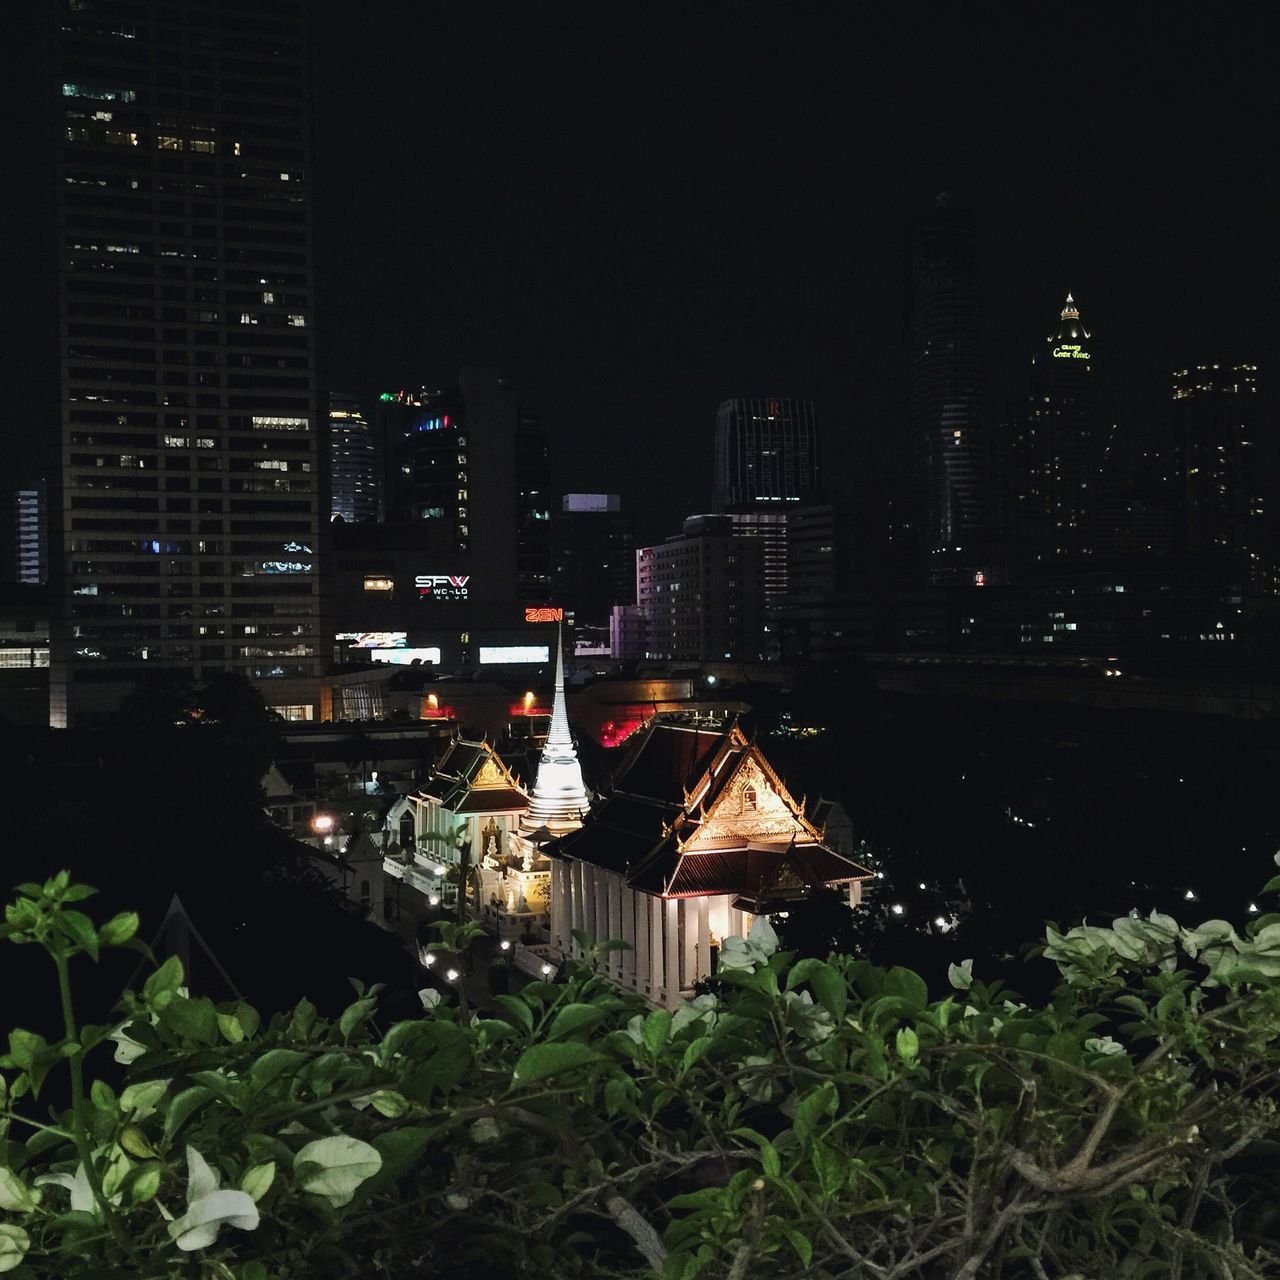 View from Paragon parking Paragon Watprathumwanaram Pagoda Stupa Chapel Church Temple Siam SiamParagon Siamnight Night Nightlife Capital Centerpoint View View From Above Parking City Cityscapes Wlodsimier